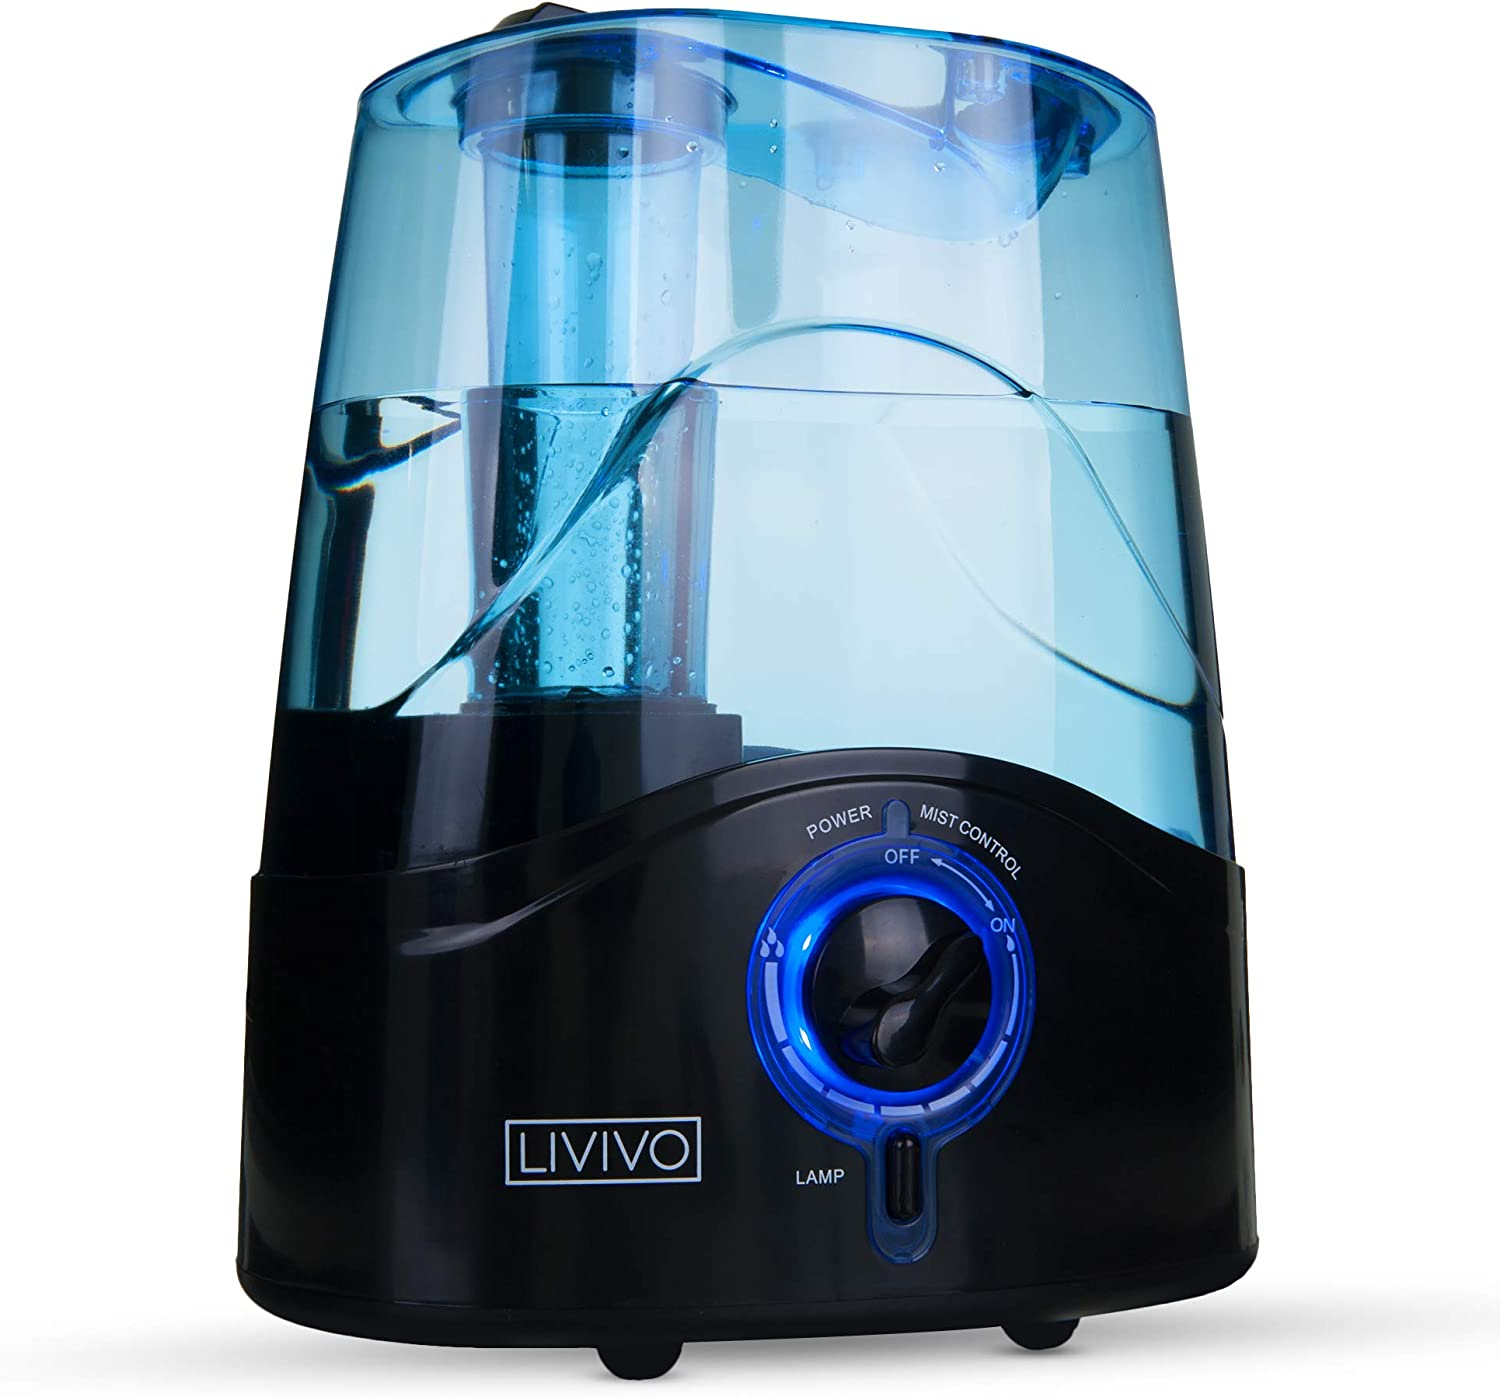 LIVIVO 4.5L Ultrasonic Cool Mist Humidifier Good For Sleep Skin Health, Relieves Cold Asthma 16 Working Hours LED Light Fresh Quiet Air Humidifiers